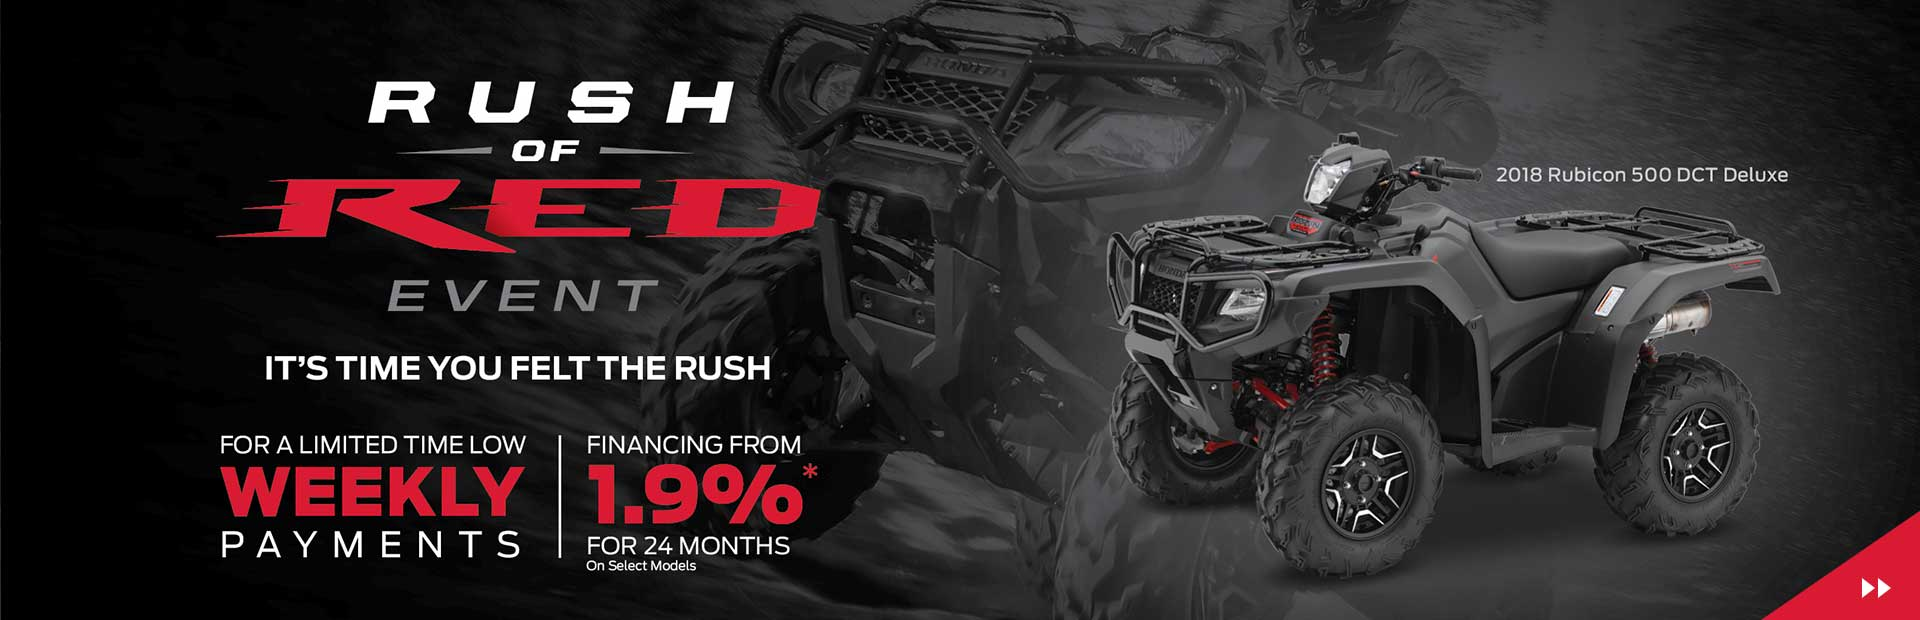 Honda Rush of Red Event is on Now! Financing from 1.9% for 24 months oac!